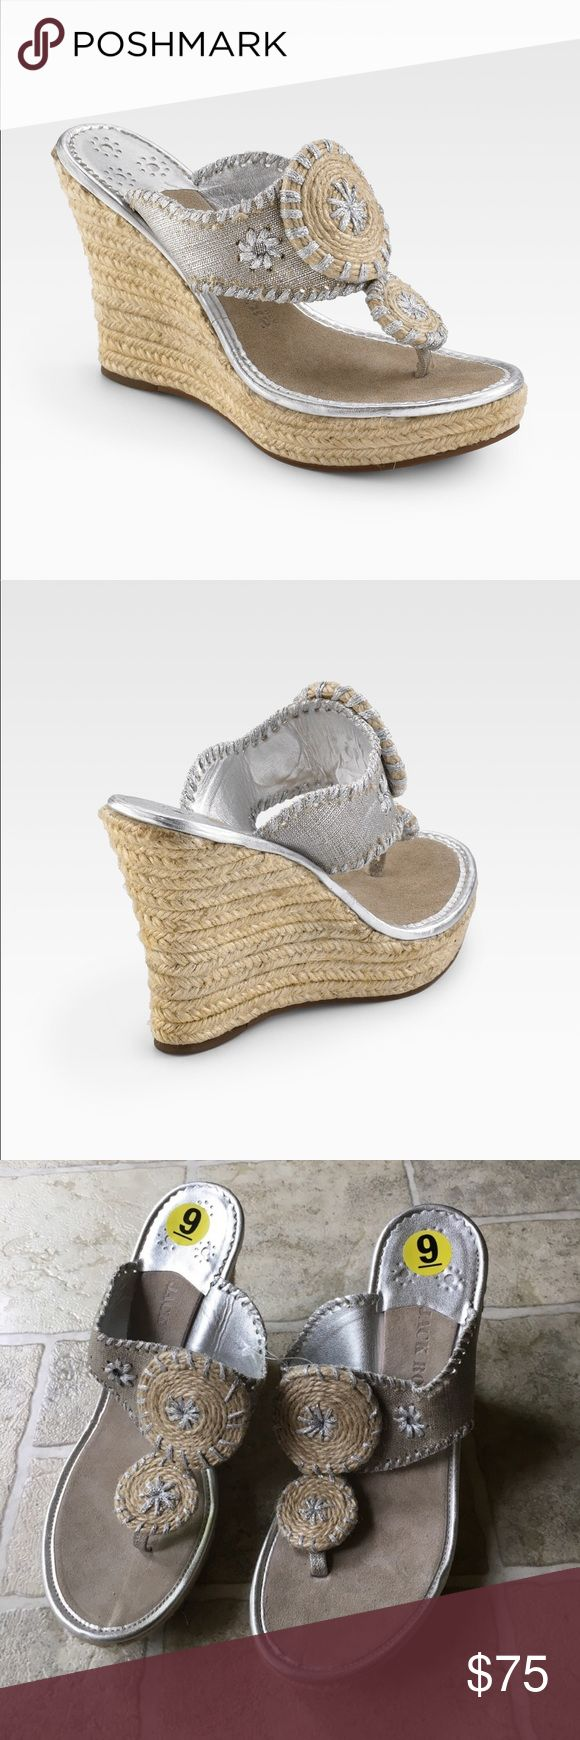 Jack Rodgers Mallorca Wedge Sandal Espadrilles These are Jack Rodgers Mallorca Wedge Sandal Espadrilles in size 9. These wedges will take you throughout the warmer months in style. Brand new. Never worn sandals. Shoes are handcrafted in the USA. Jack Rogers Shoes Espadrilles